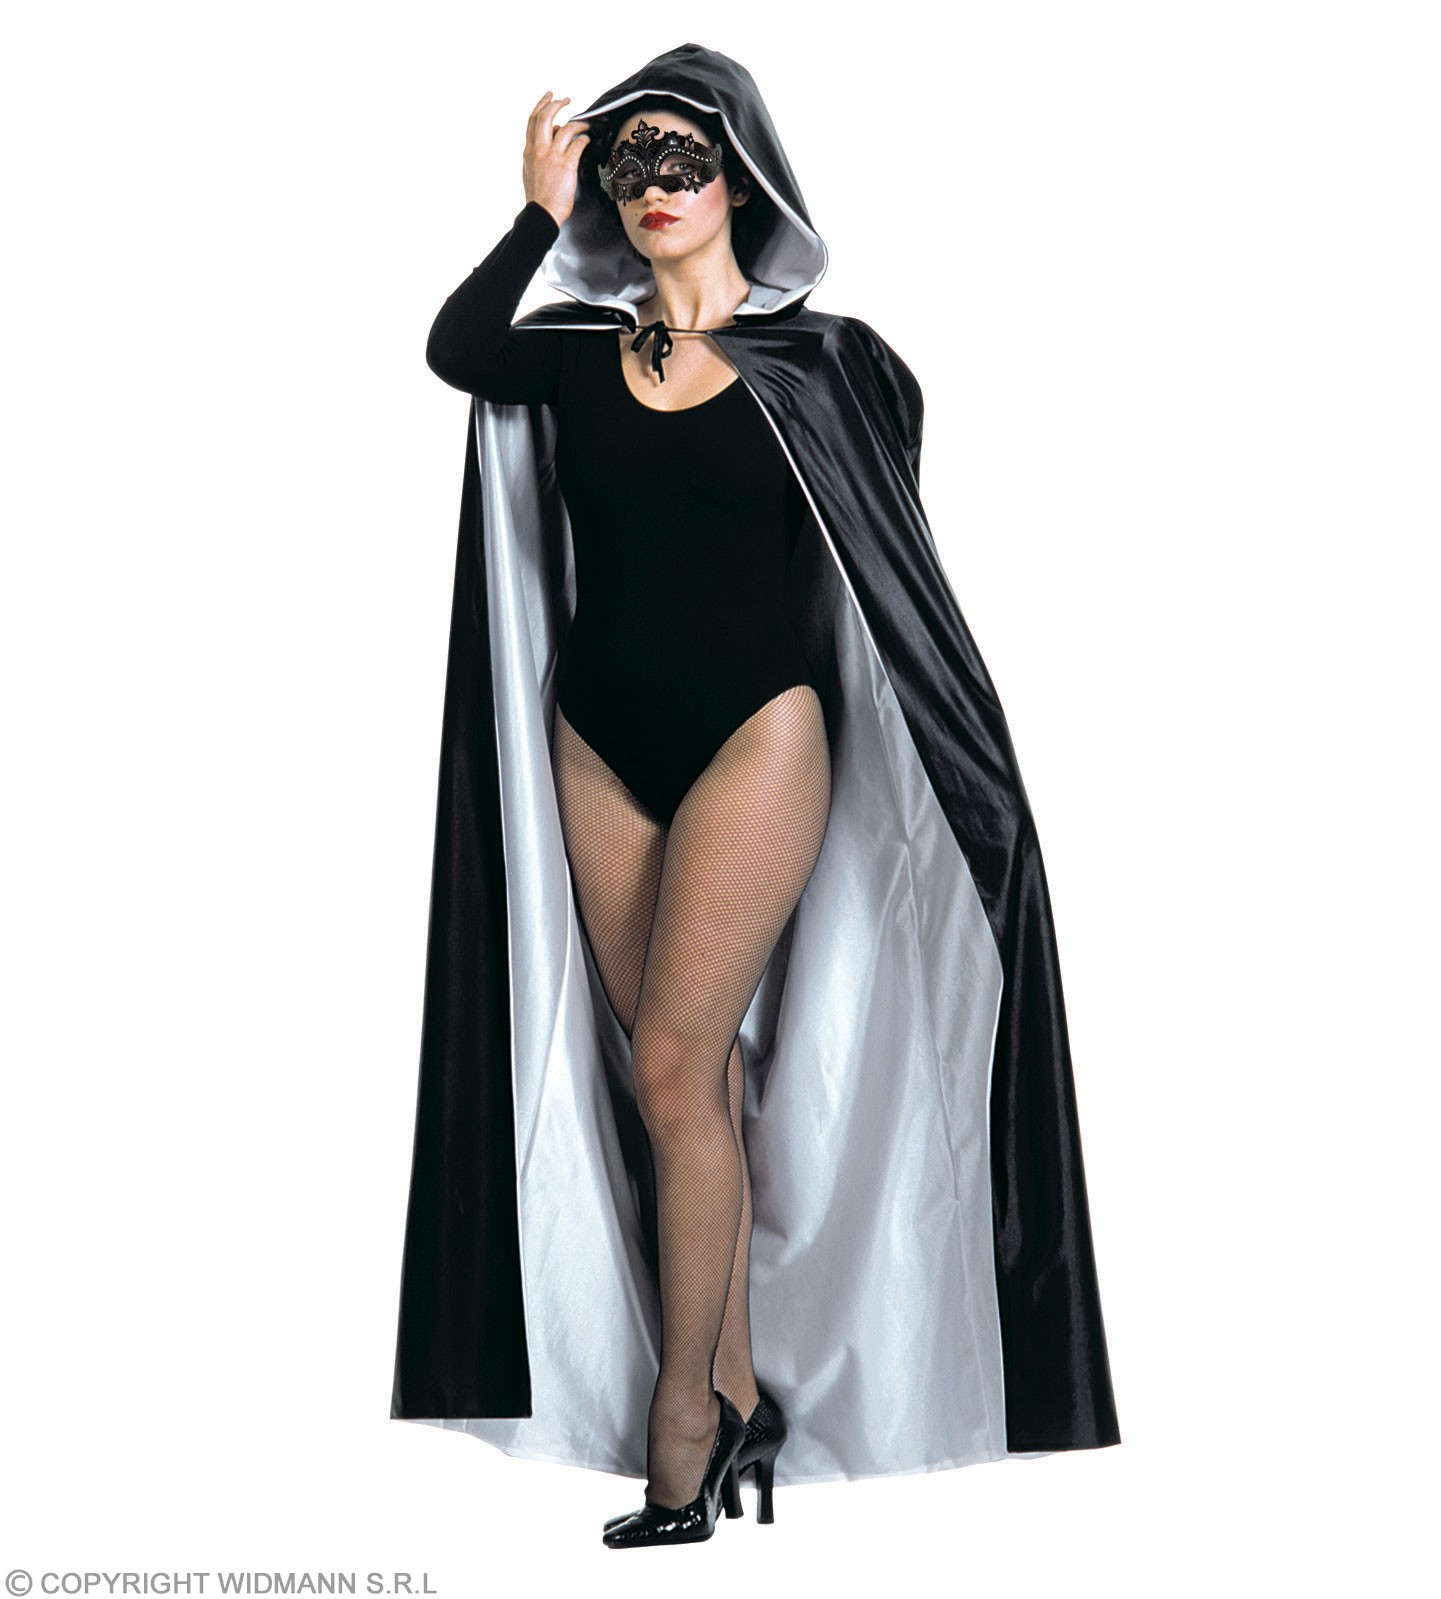 Hooded Cape Super Deluxe 140Cm Black/White Costume (Halloween)